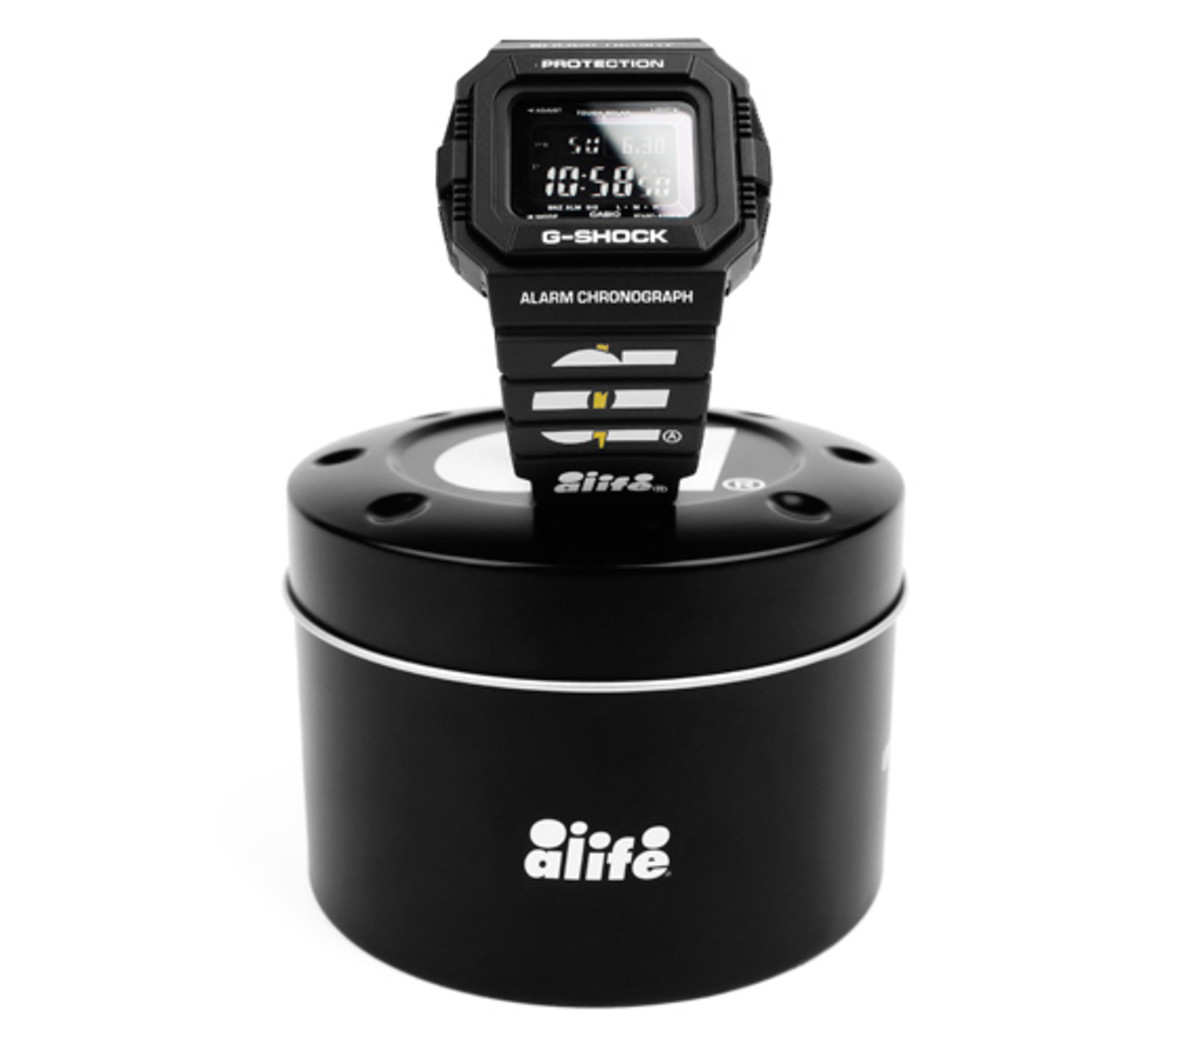 alife-casio-gshock-g5500al-1-watch-03